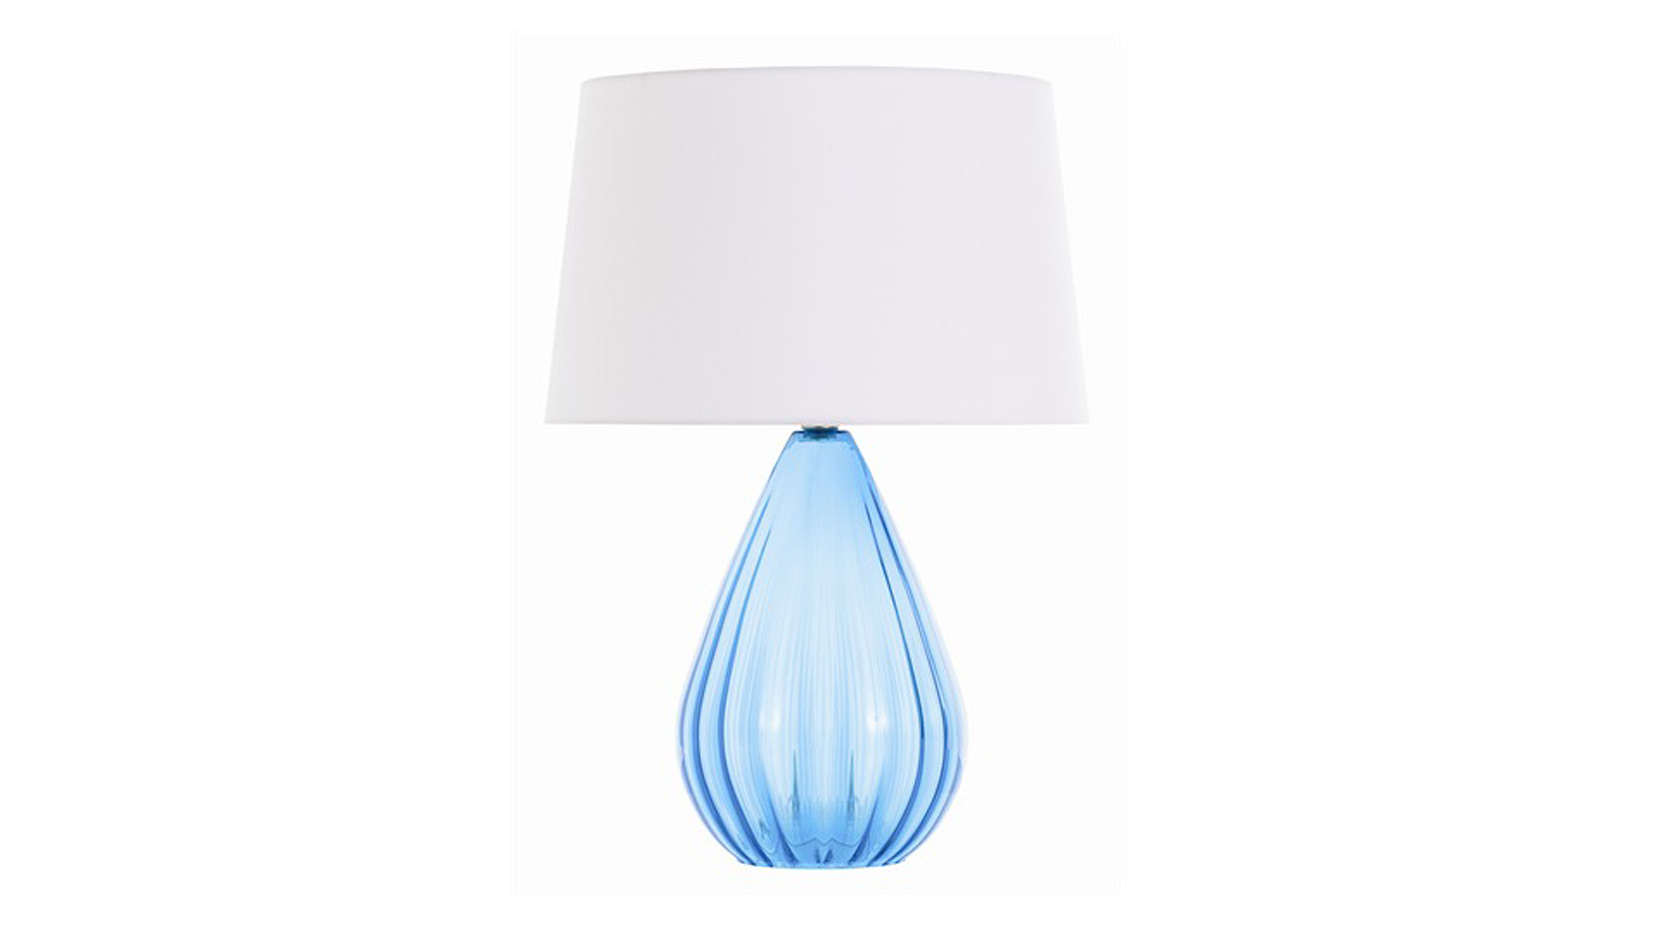 The modern optic table lamp stands with clear style beneath its chic